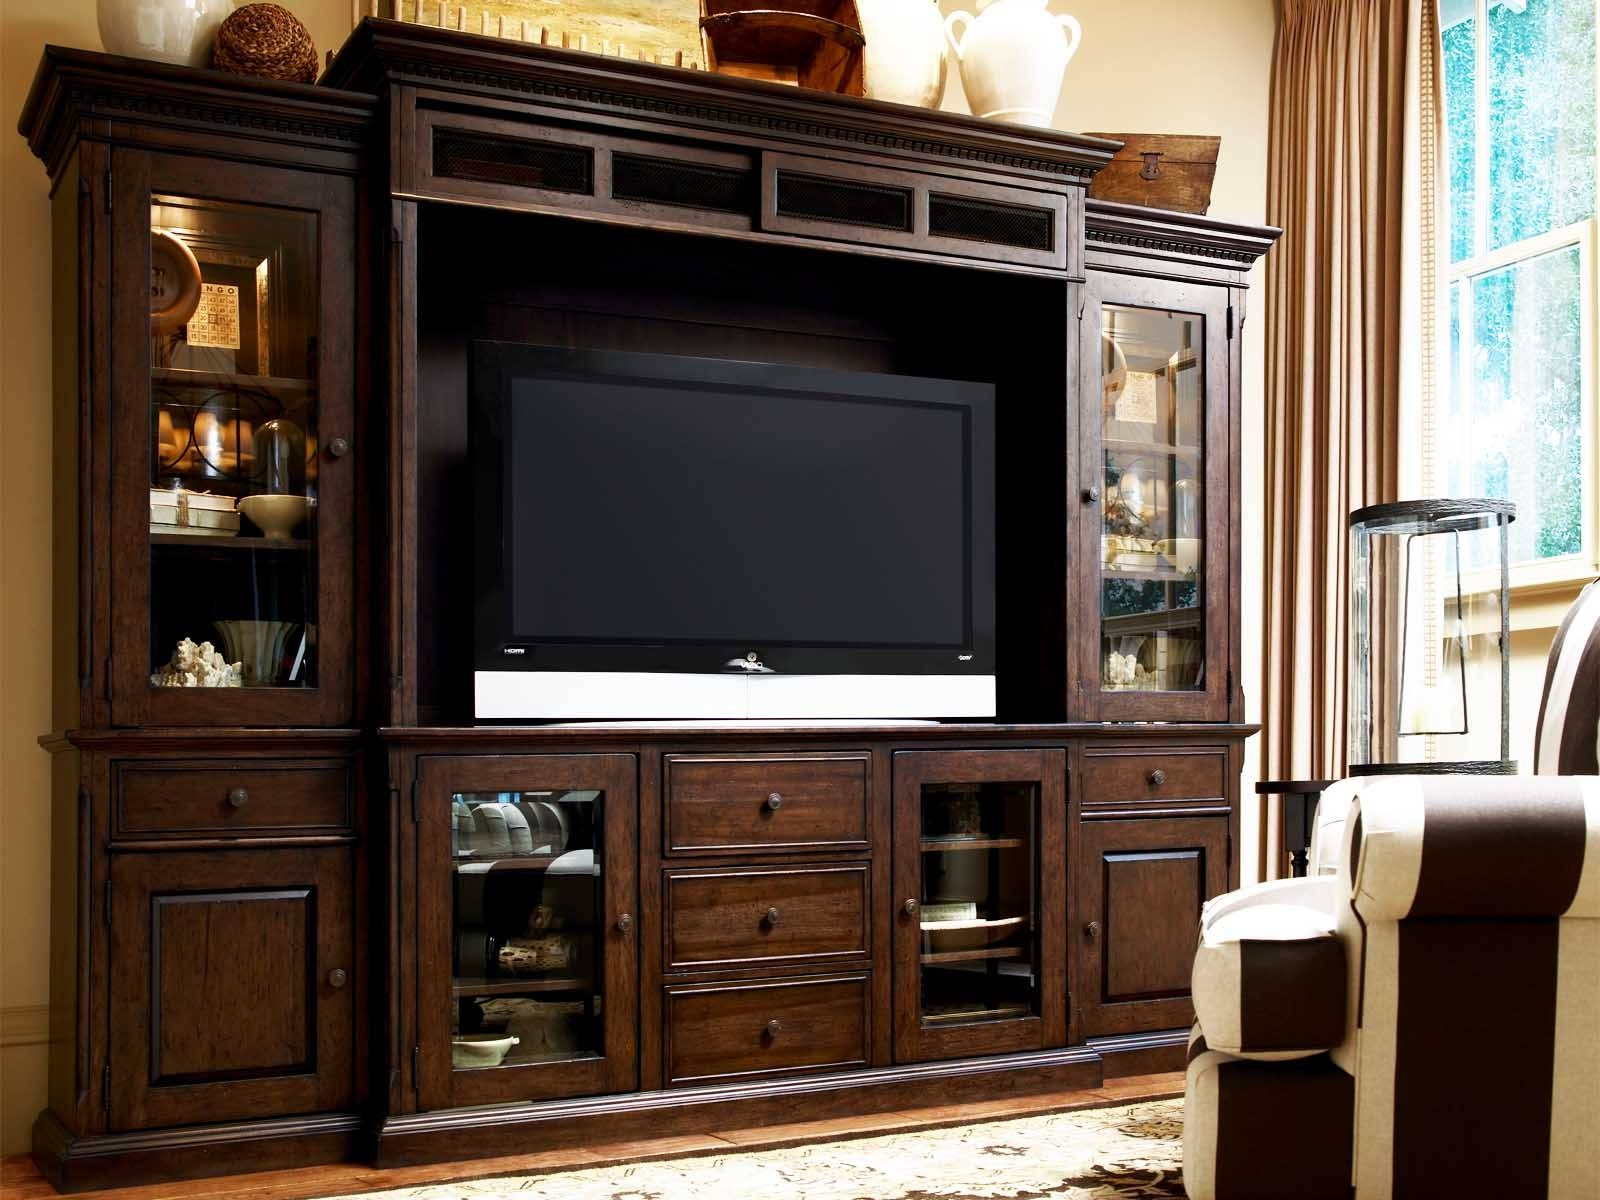 Large Brown Lacquered Mahogany Wood Media Cabinet With Lighted For Wooden Tv Stands With Glass Doors (View 2 of 15)